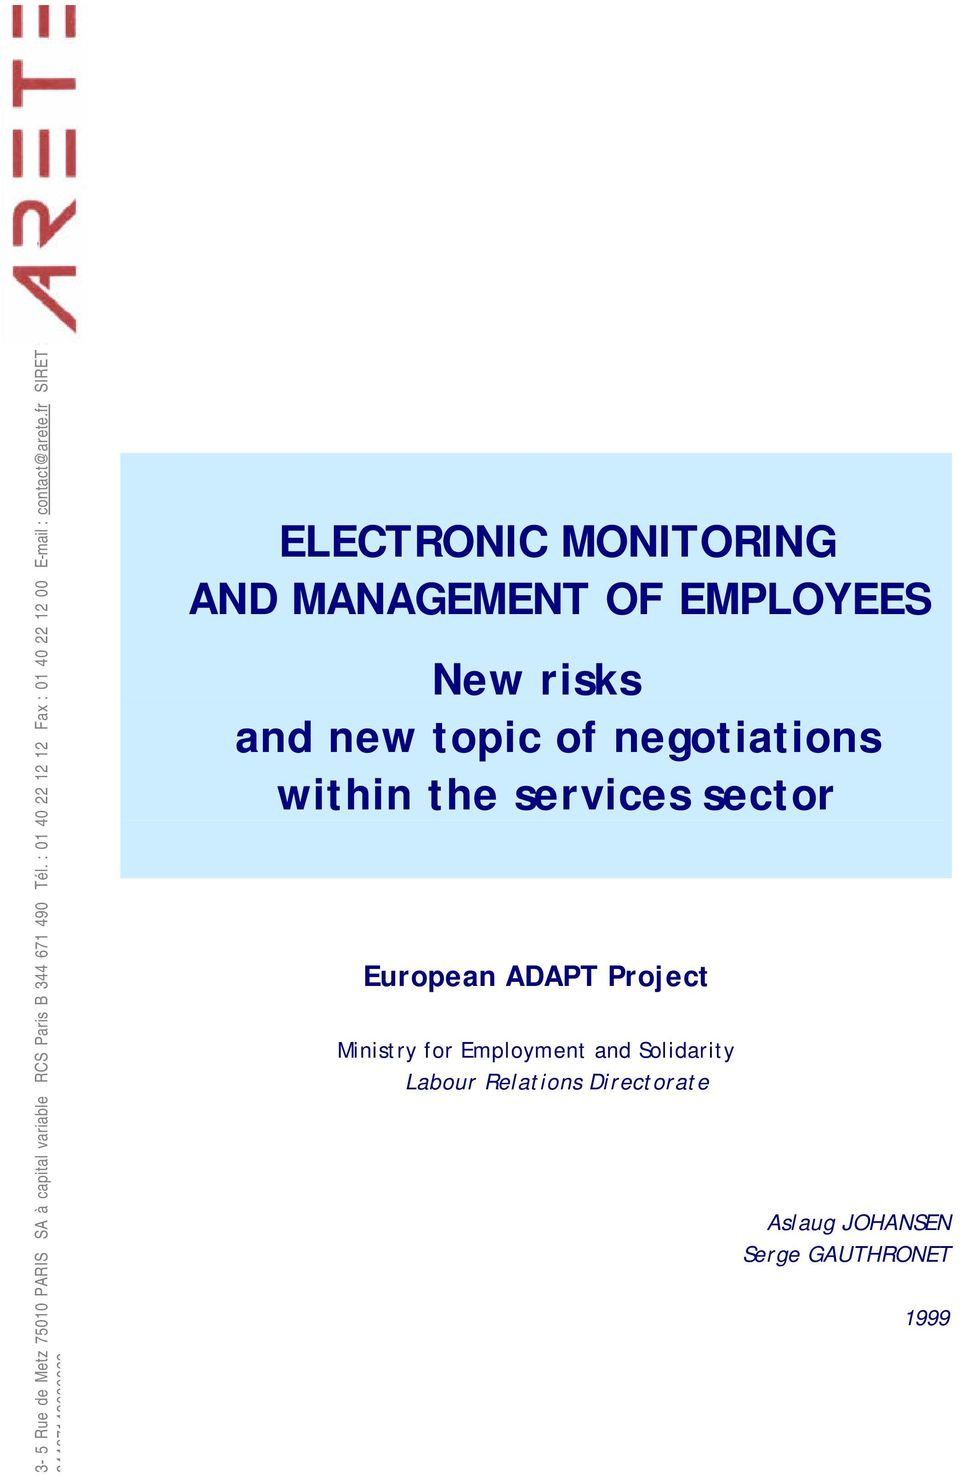 fr SIRET : 34467149000029 ELECTRONIC MONITORING AND MANAGEMENT OF EMPLOYEES New risks and new topic of